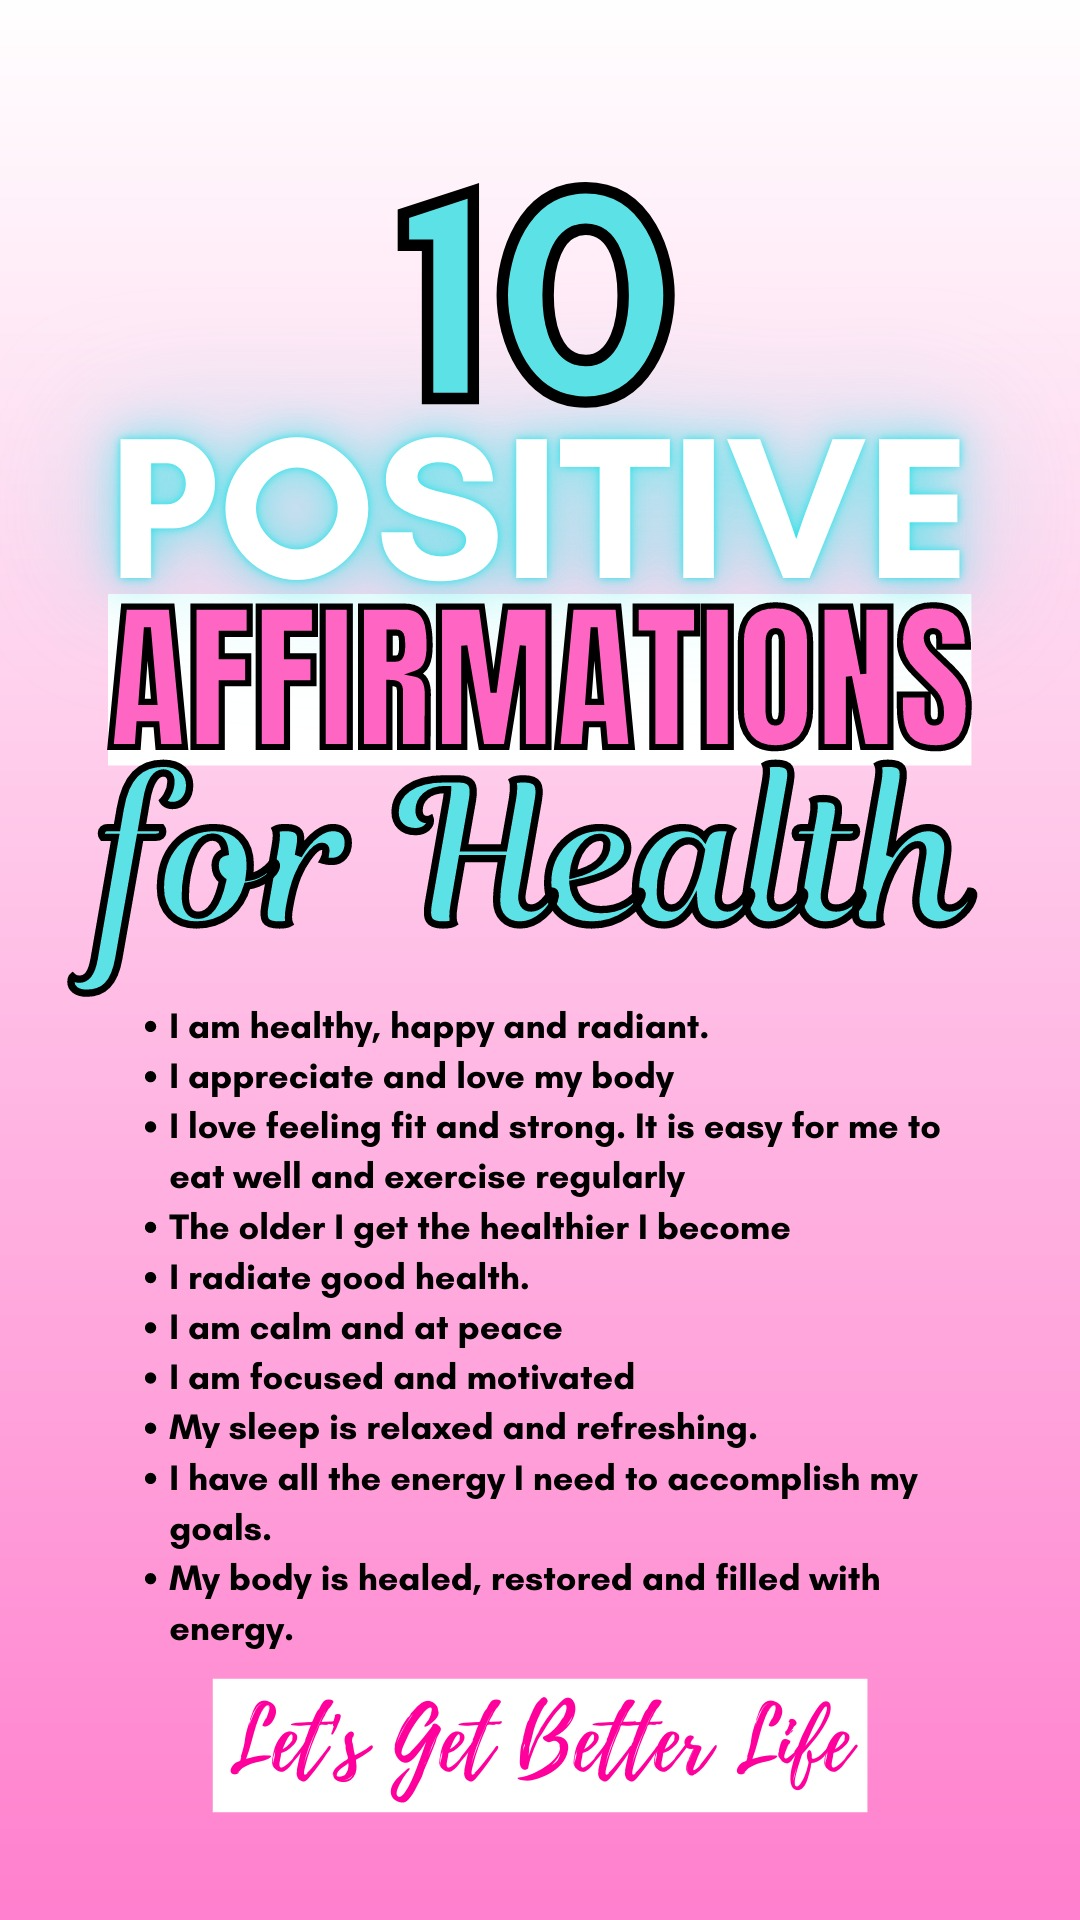 10 Positive Affirmations for Health